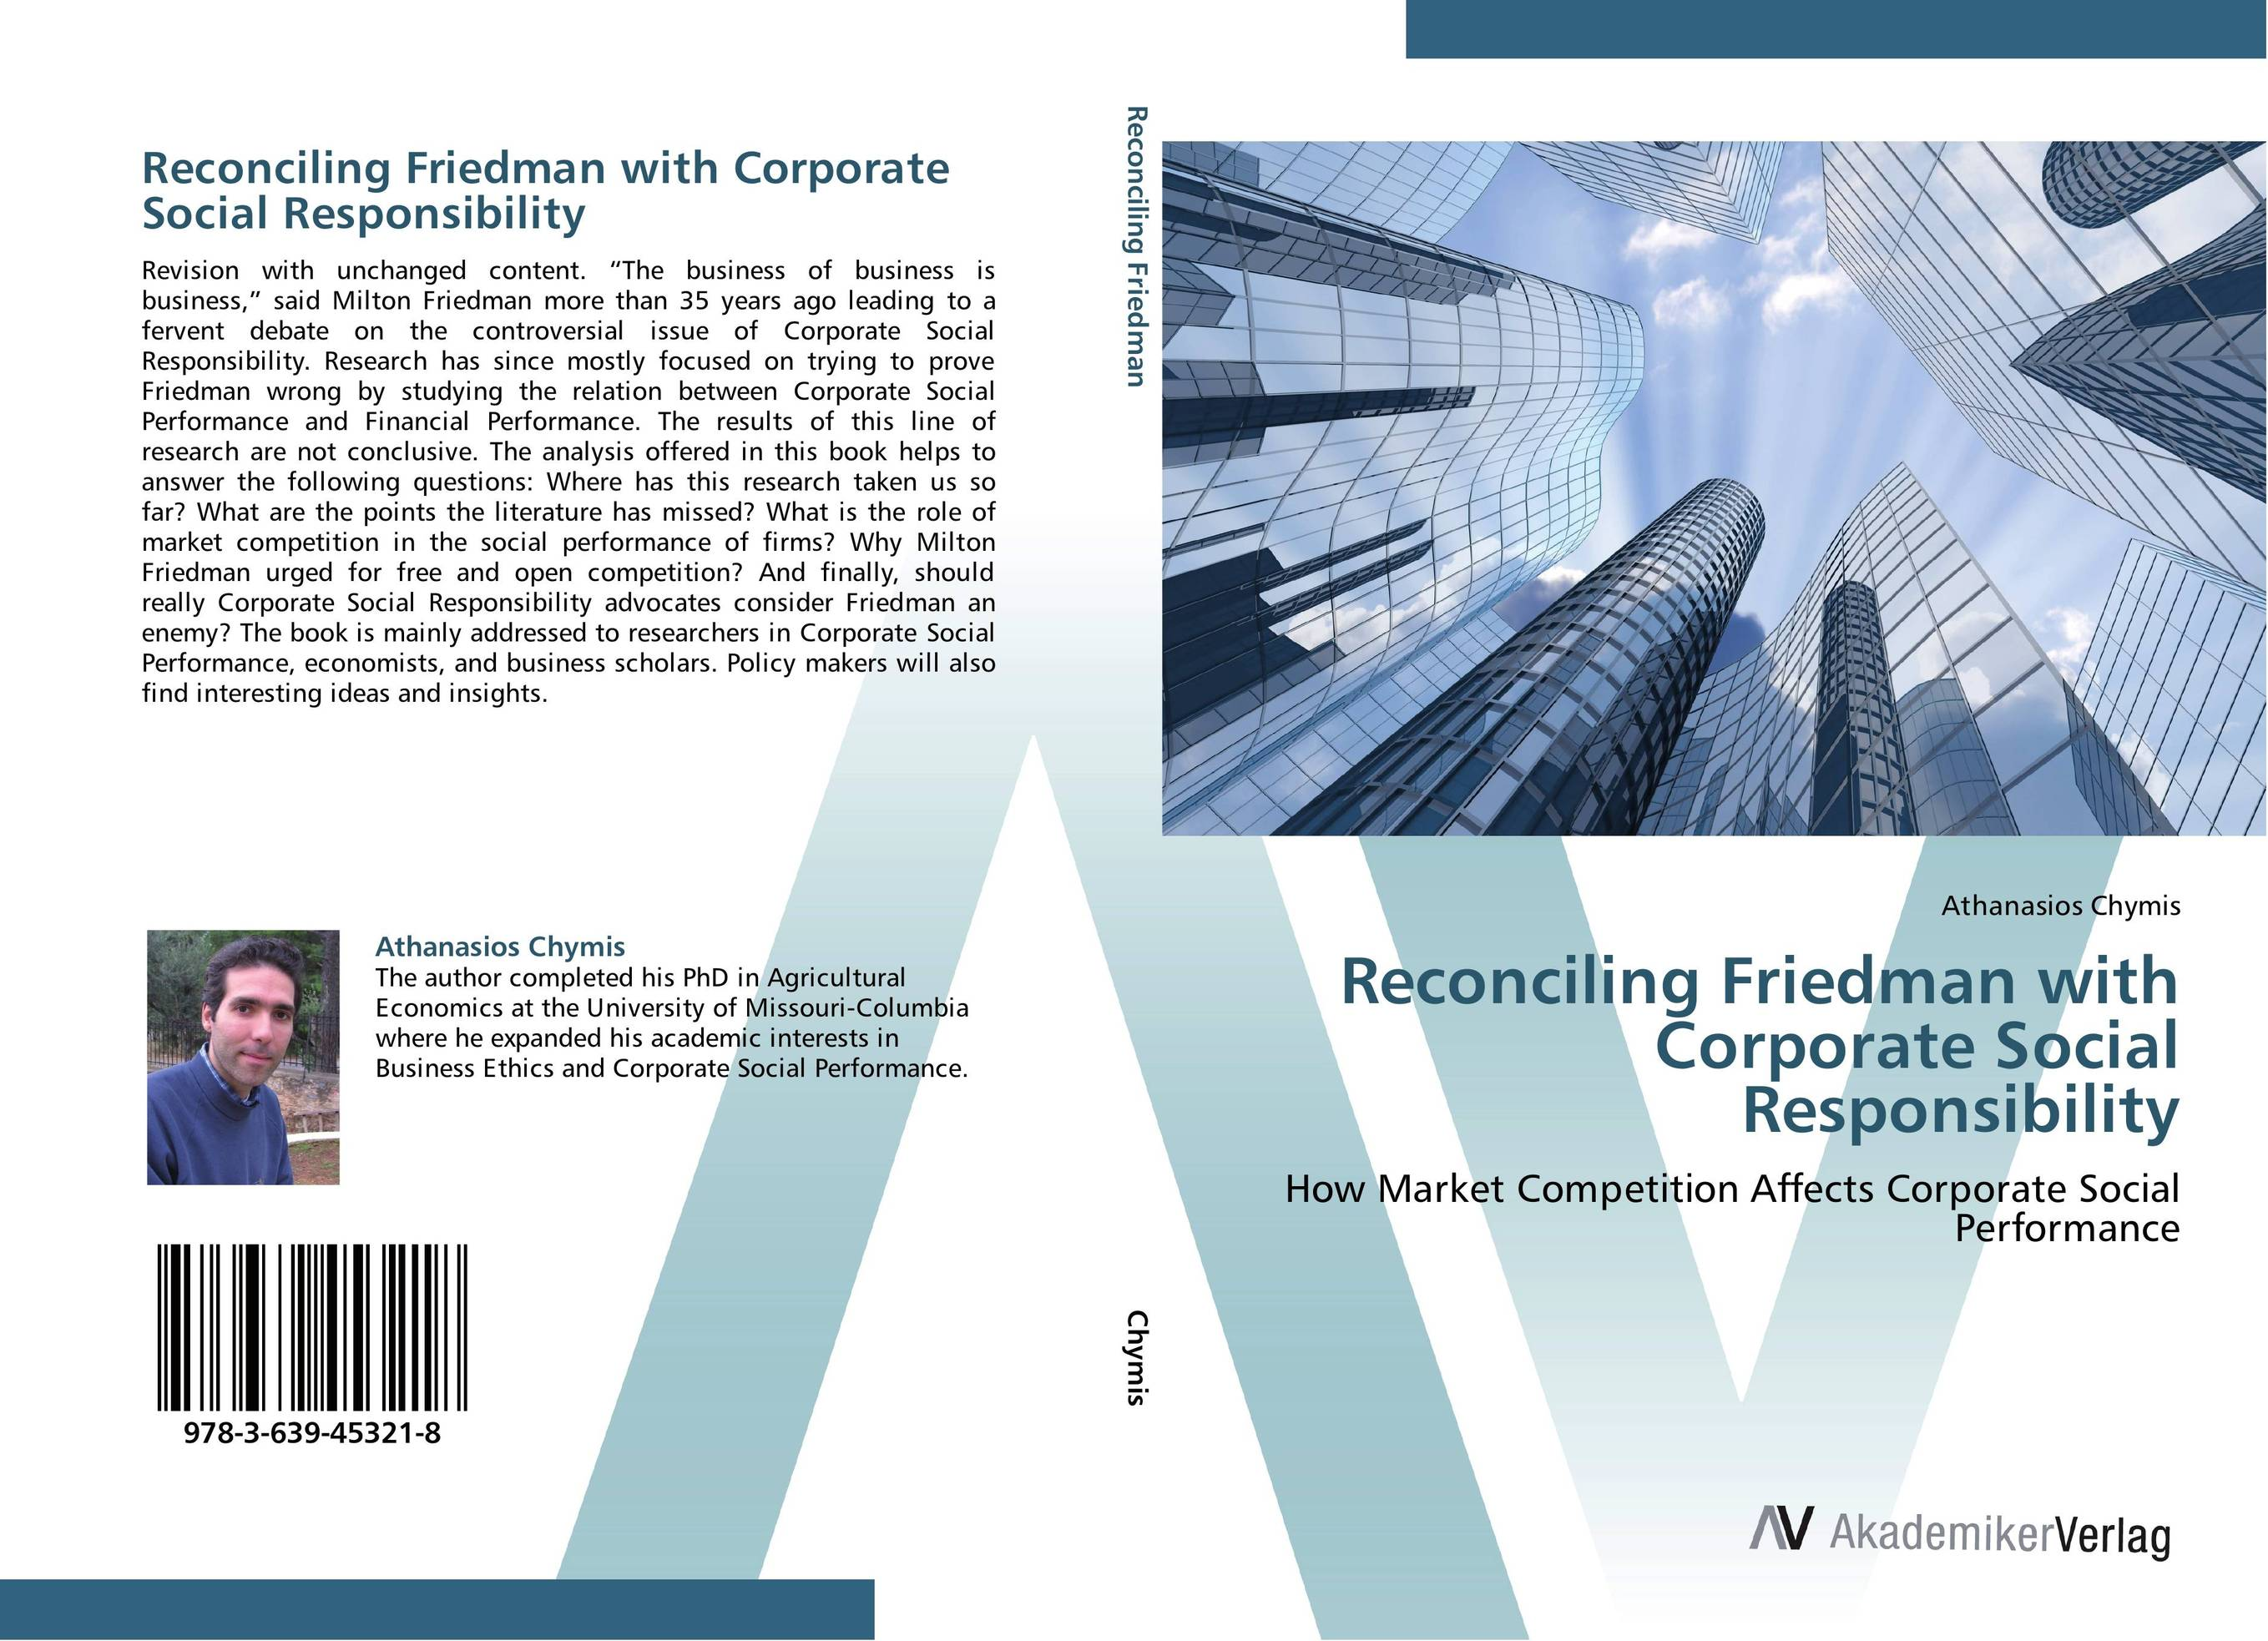 Reconciling Friedman with Corporate Social Responsibility dan zheng the impact of employees perception of corporate social responsibility